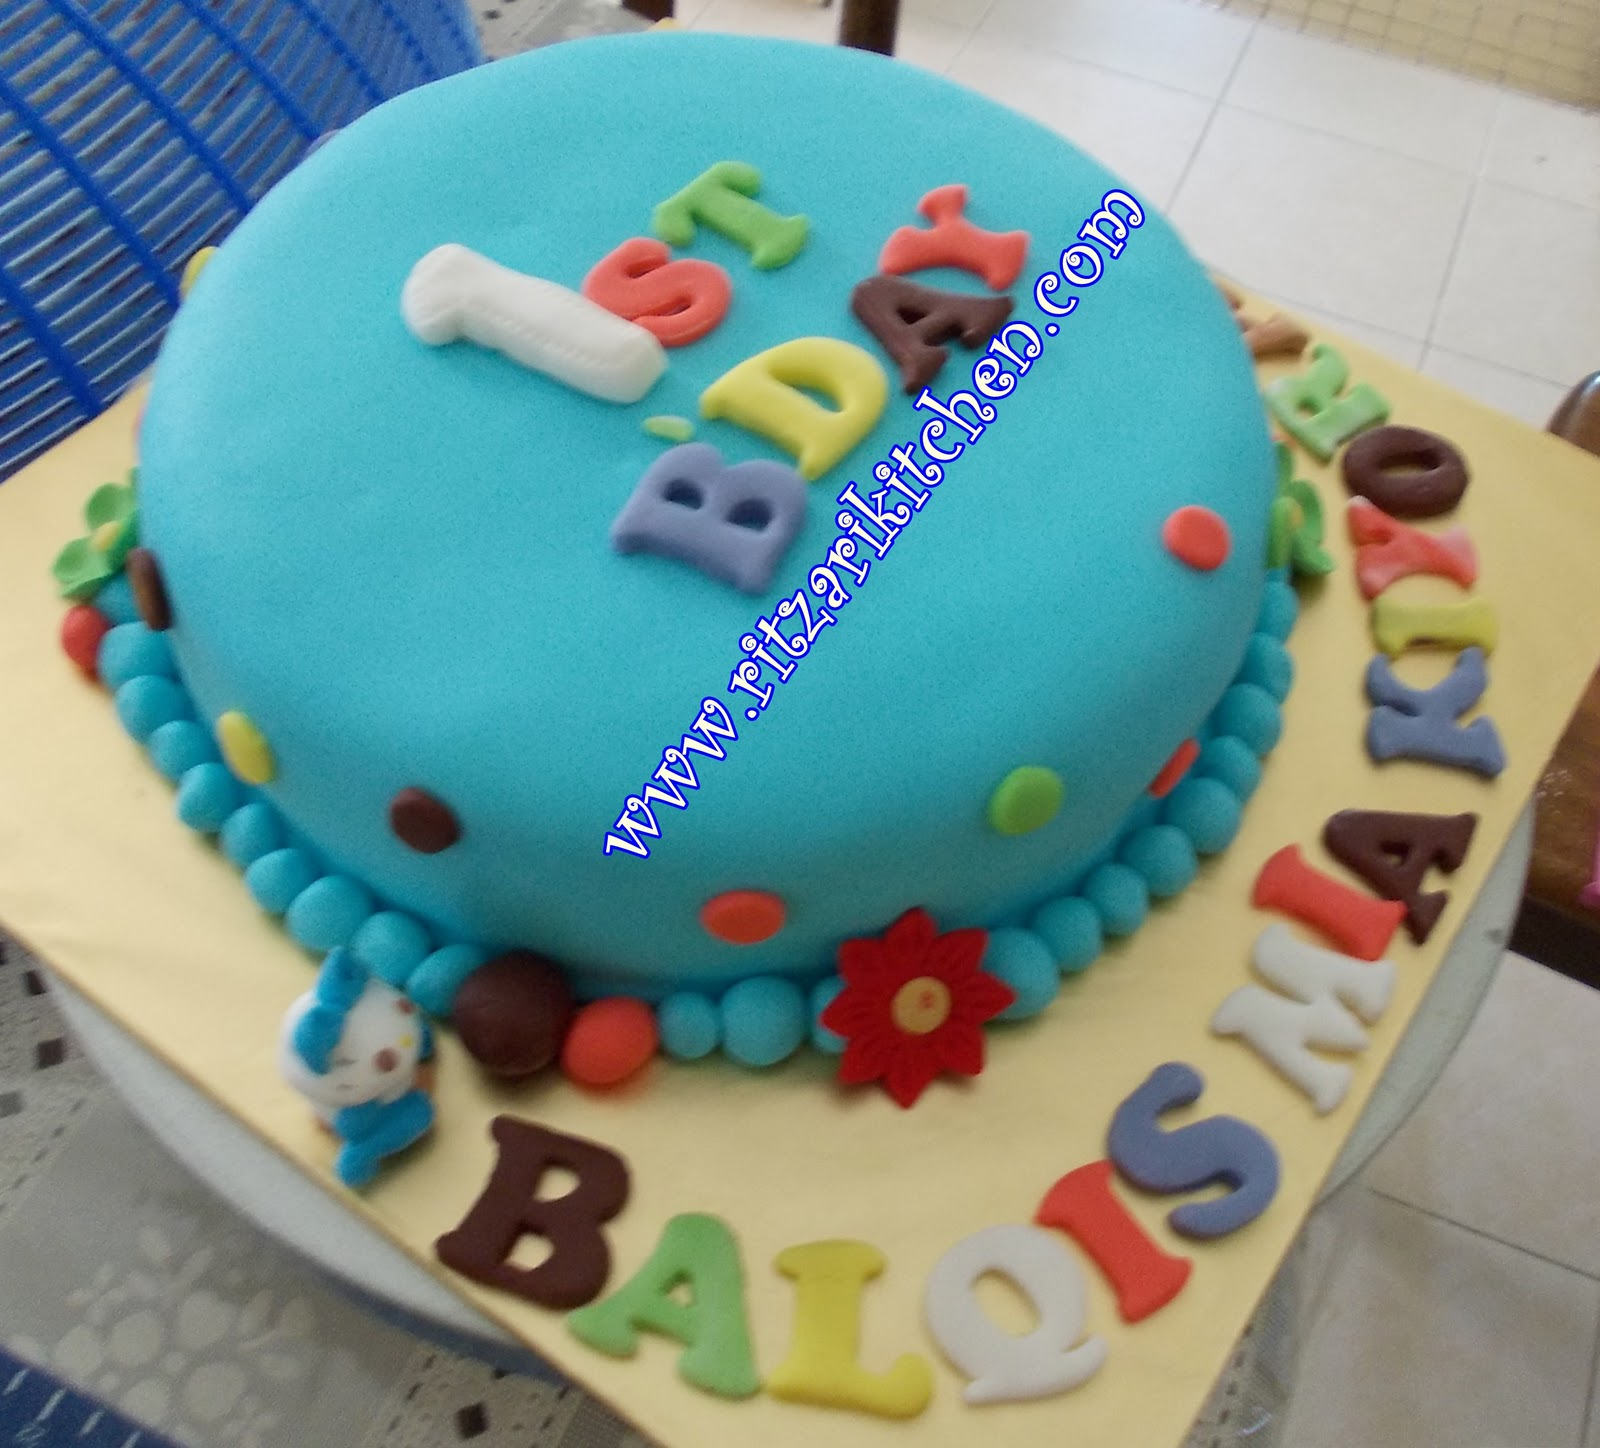 Few Cake Decorating Ideas For The Beginners Cake Decorating Ideas